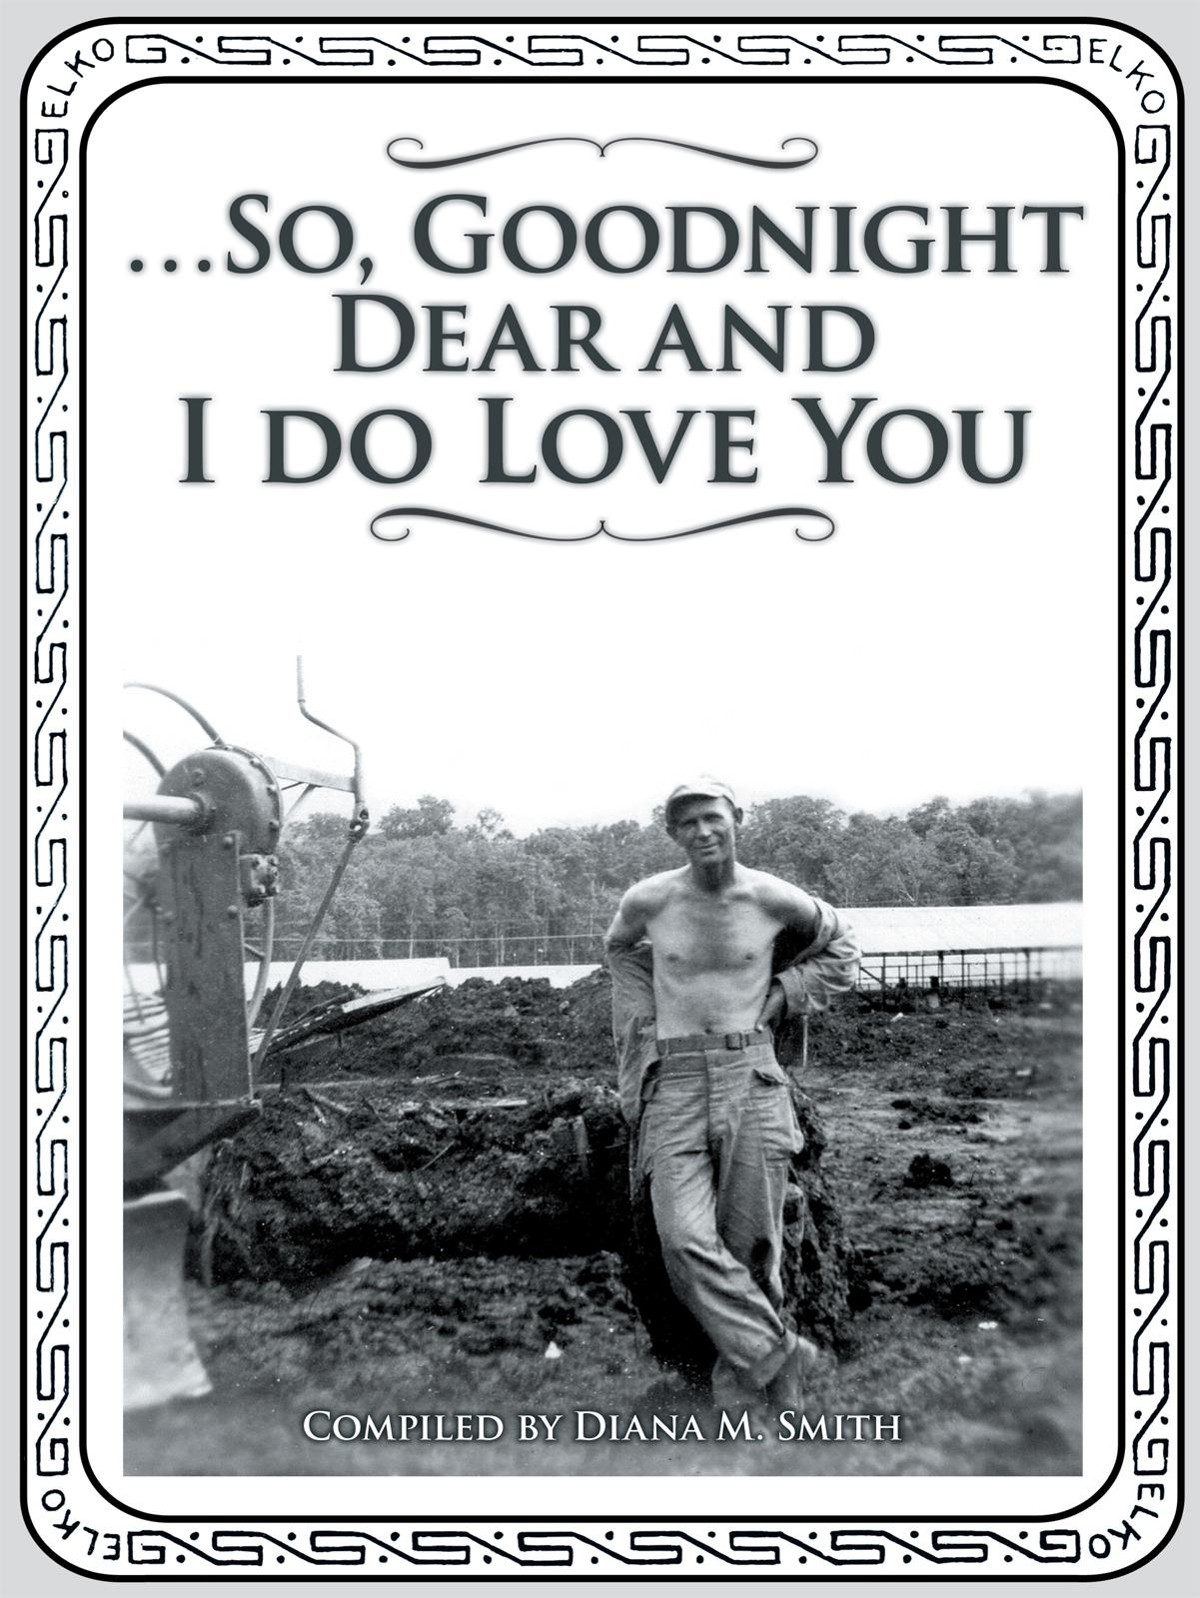 …So, Goodnight Dear and I do Love You